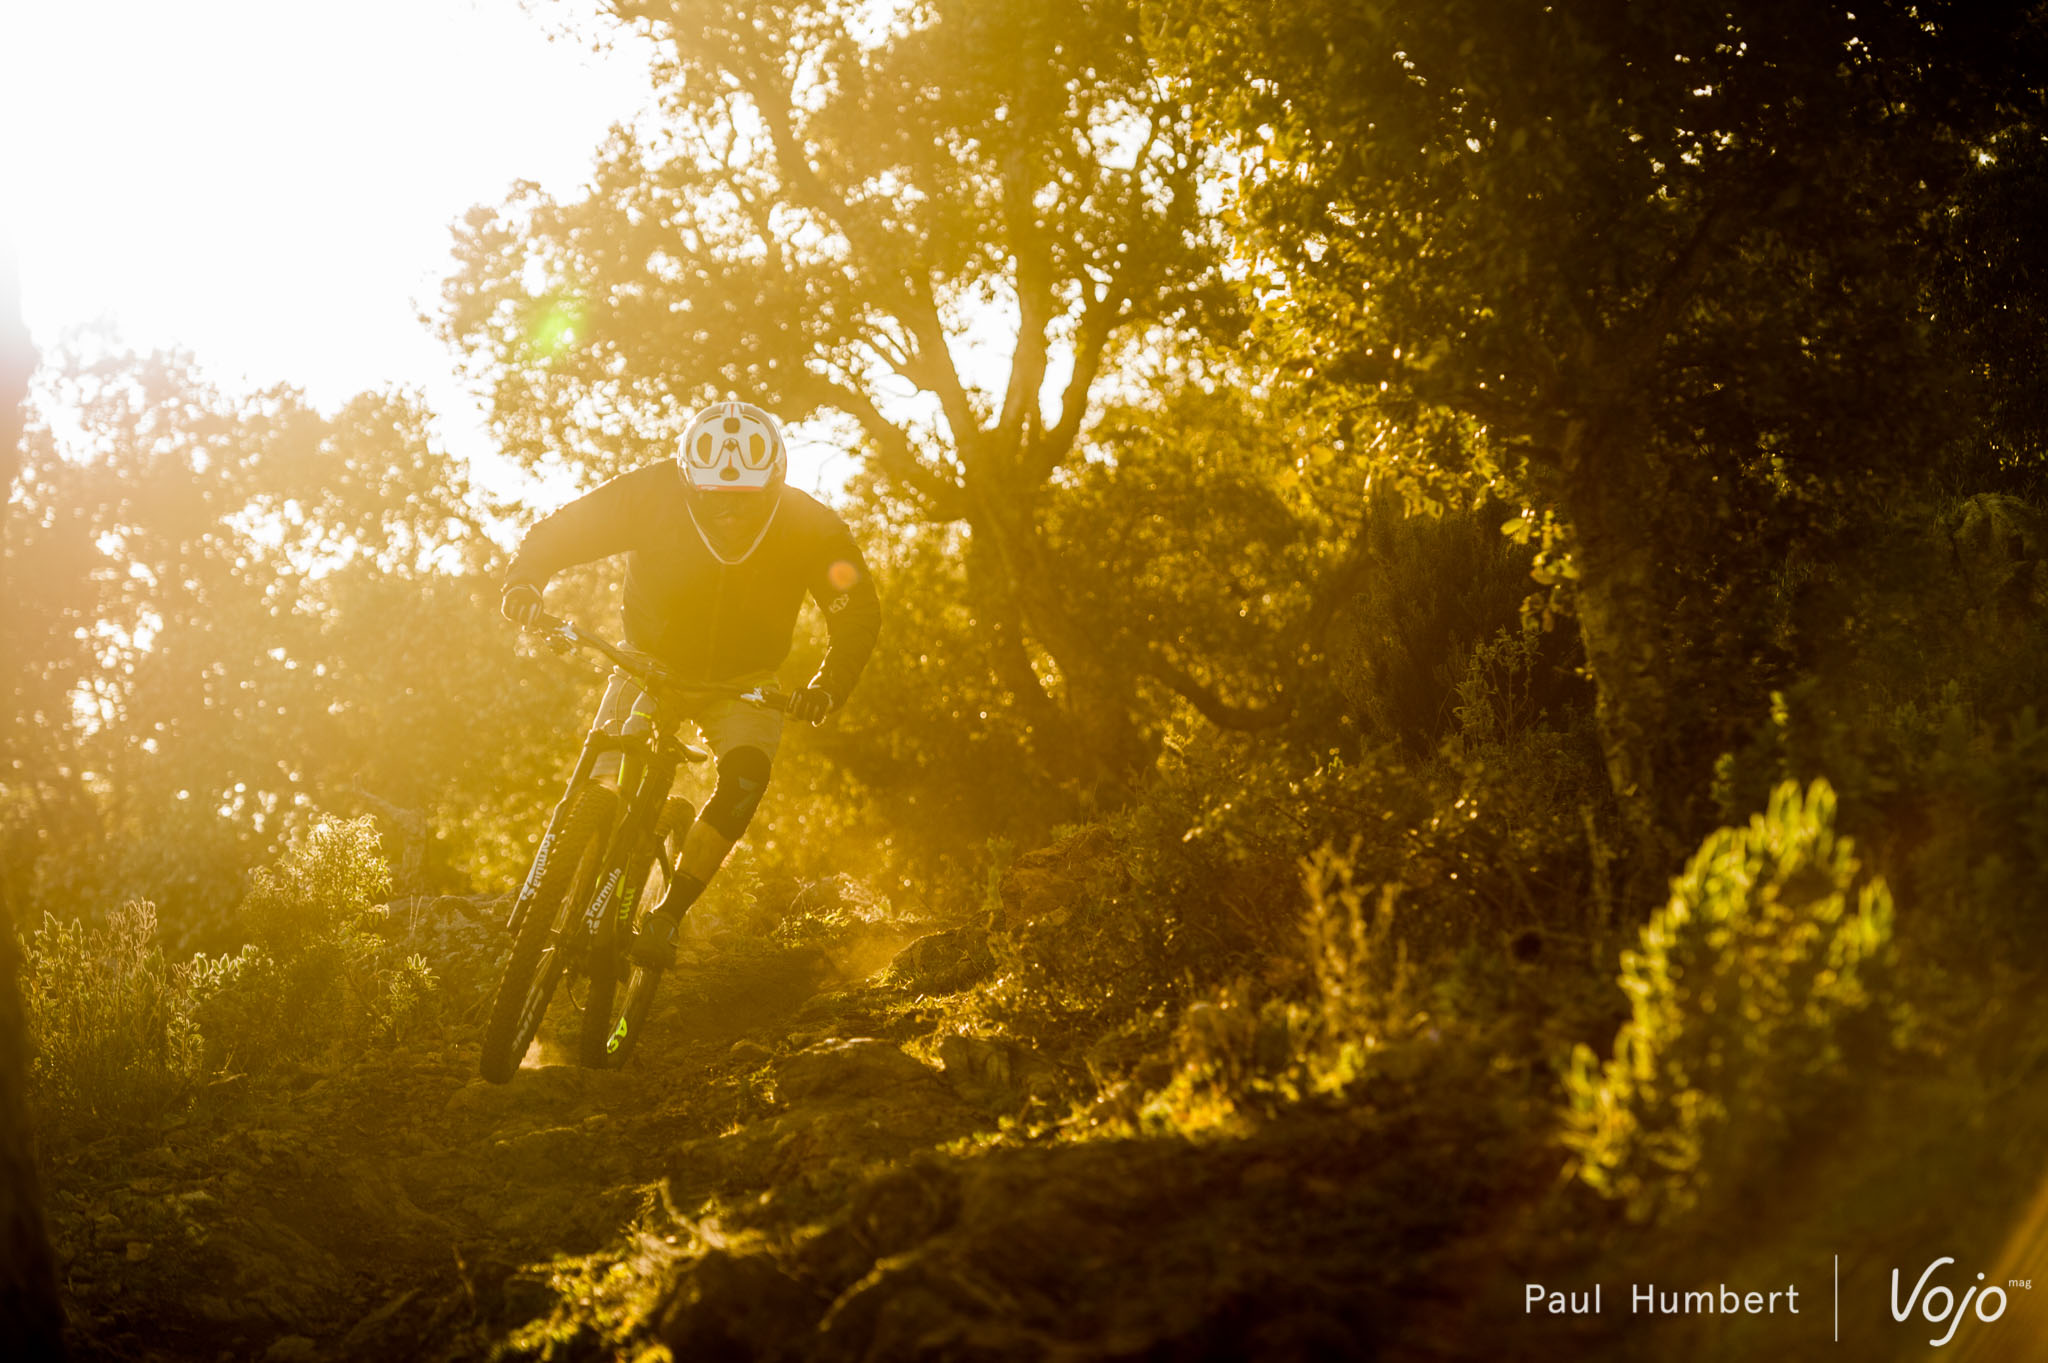 azur-bike-park-2017-vojo-paul-humbert-14